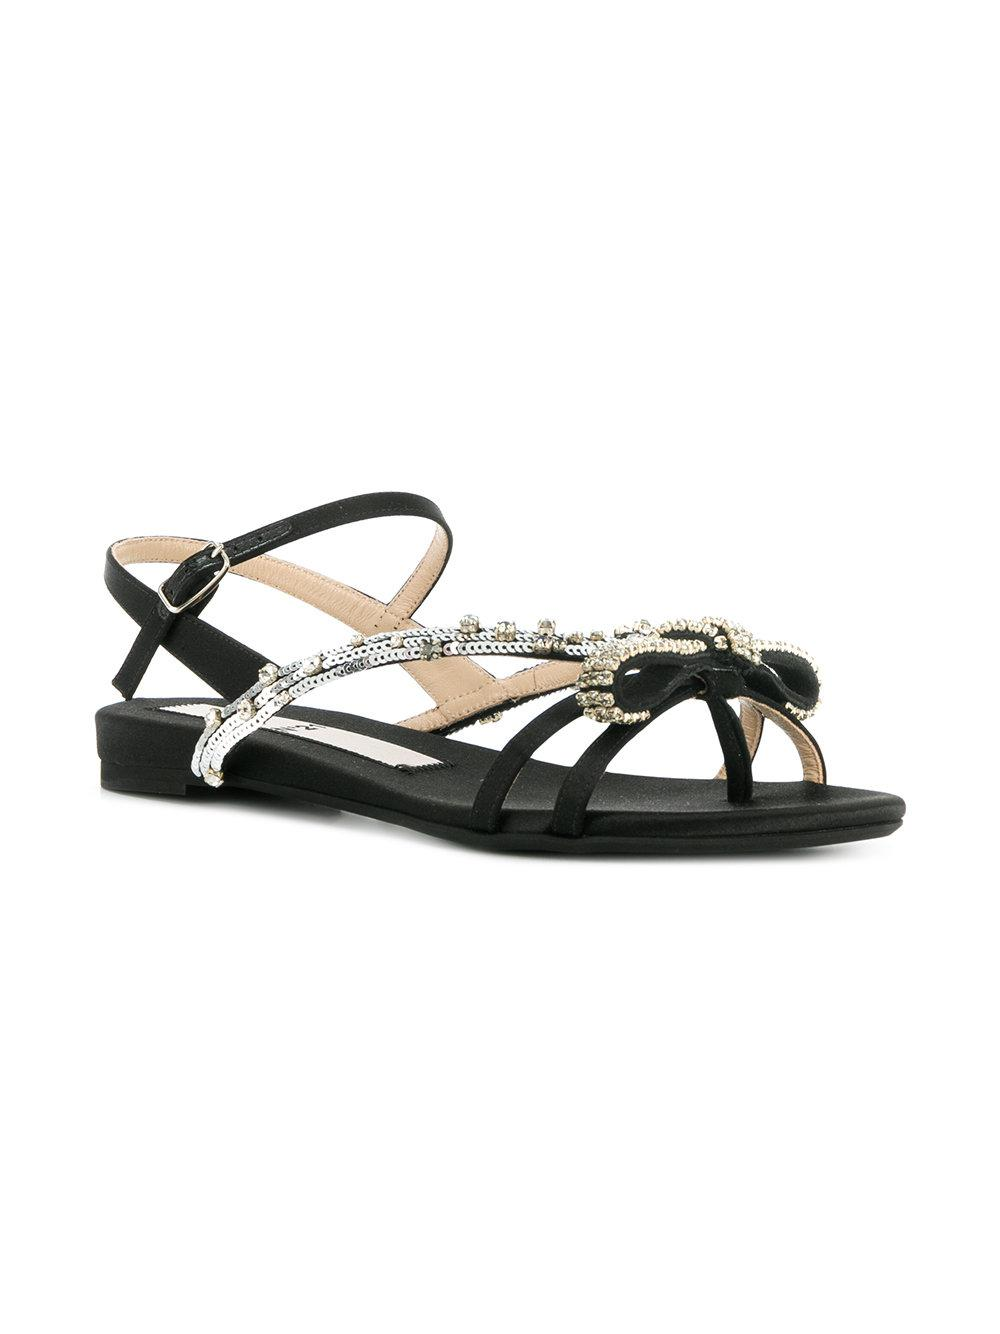 embellished knotted sandals - Metallic N°21